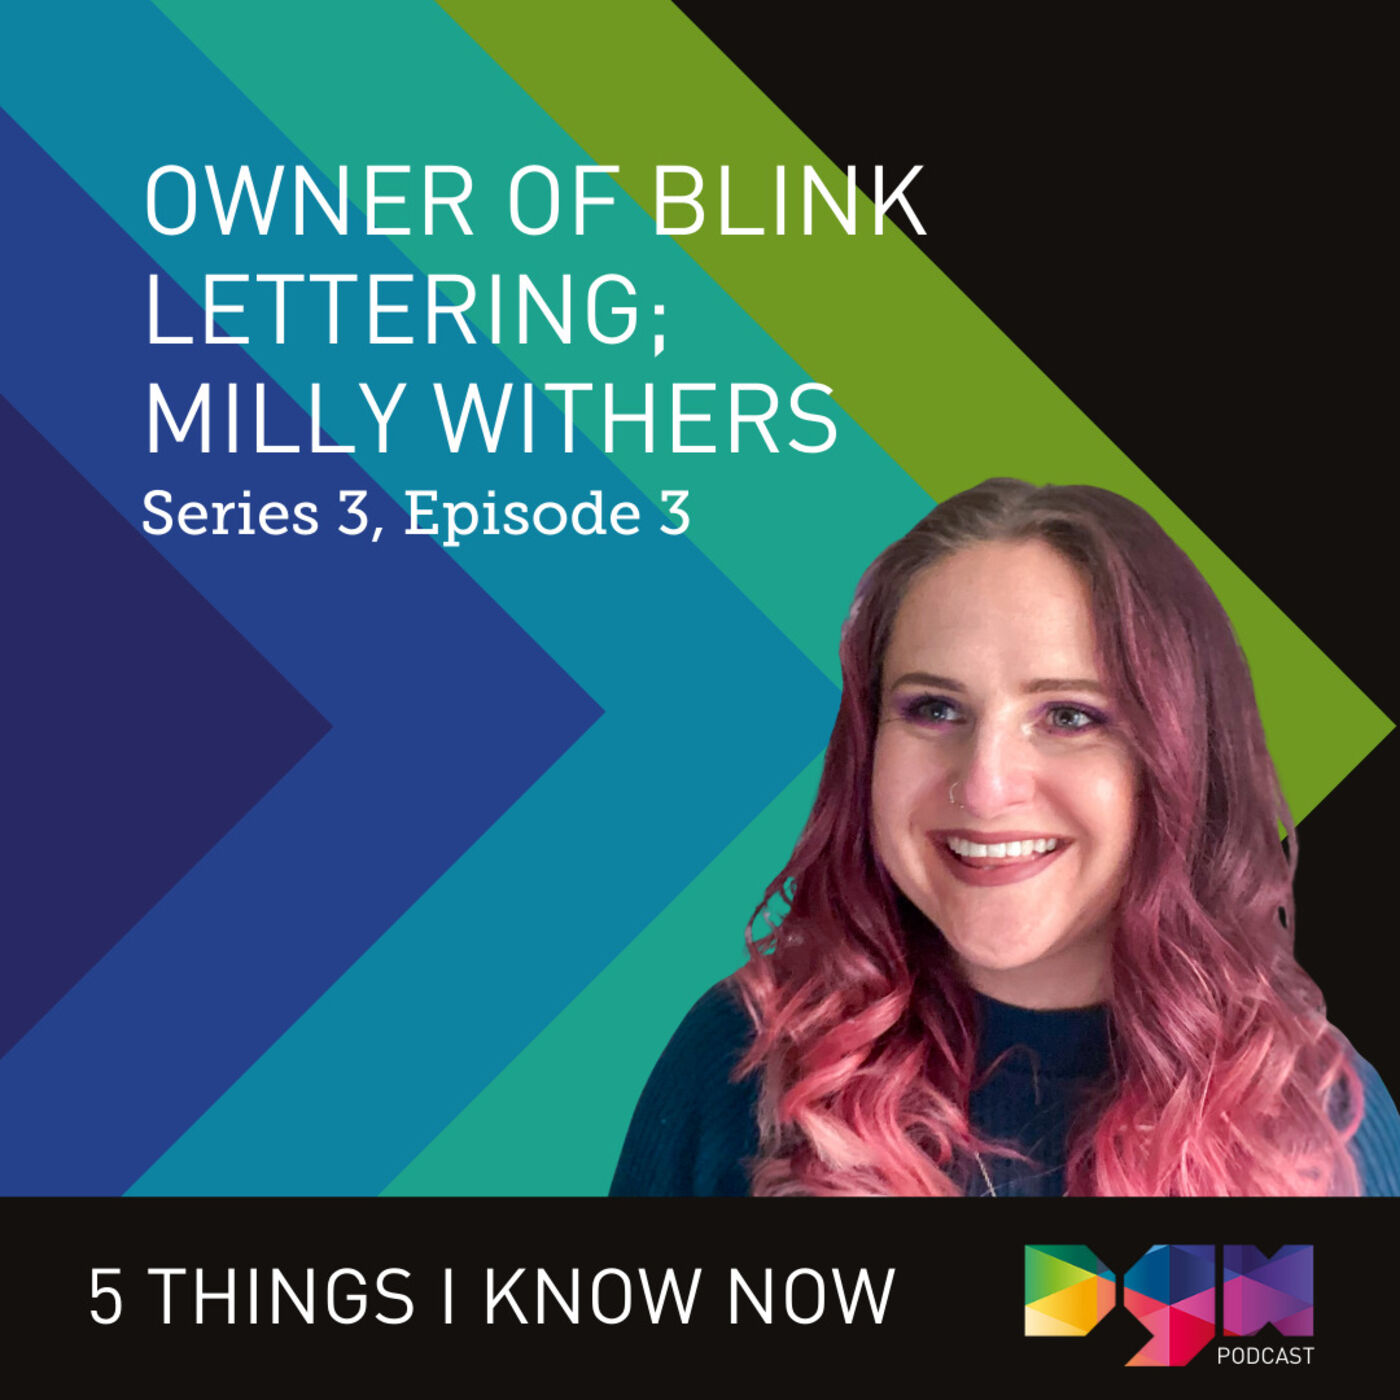 Owner of Blink Lettering; Milly Withers #S3E3